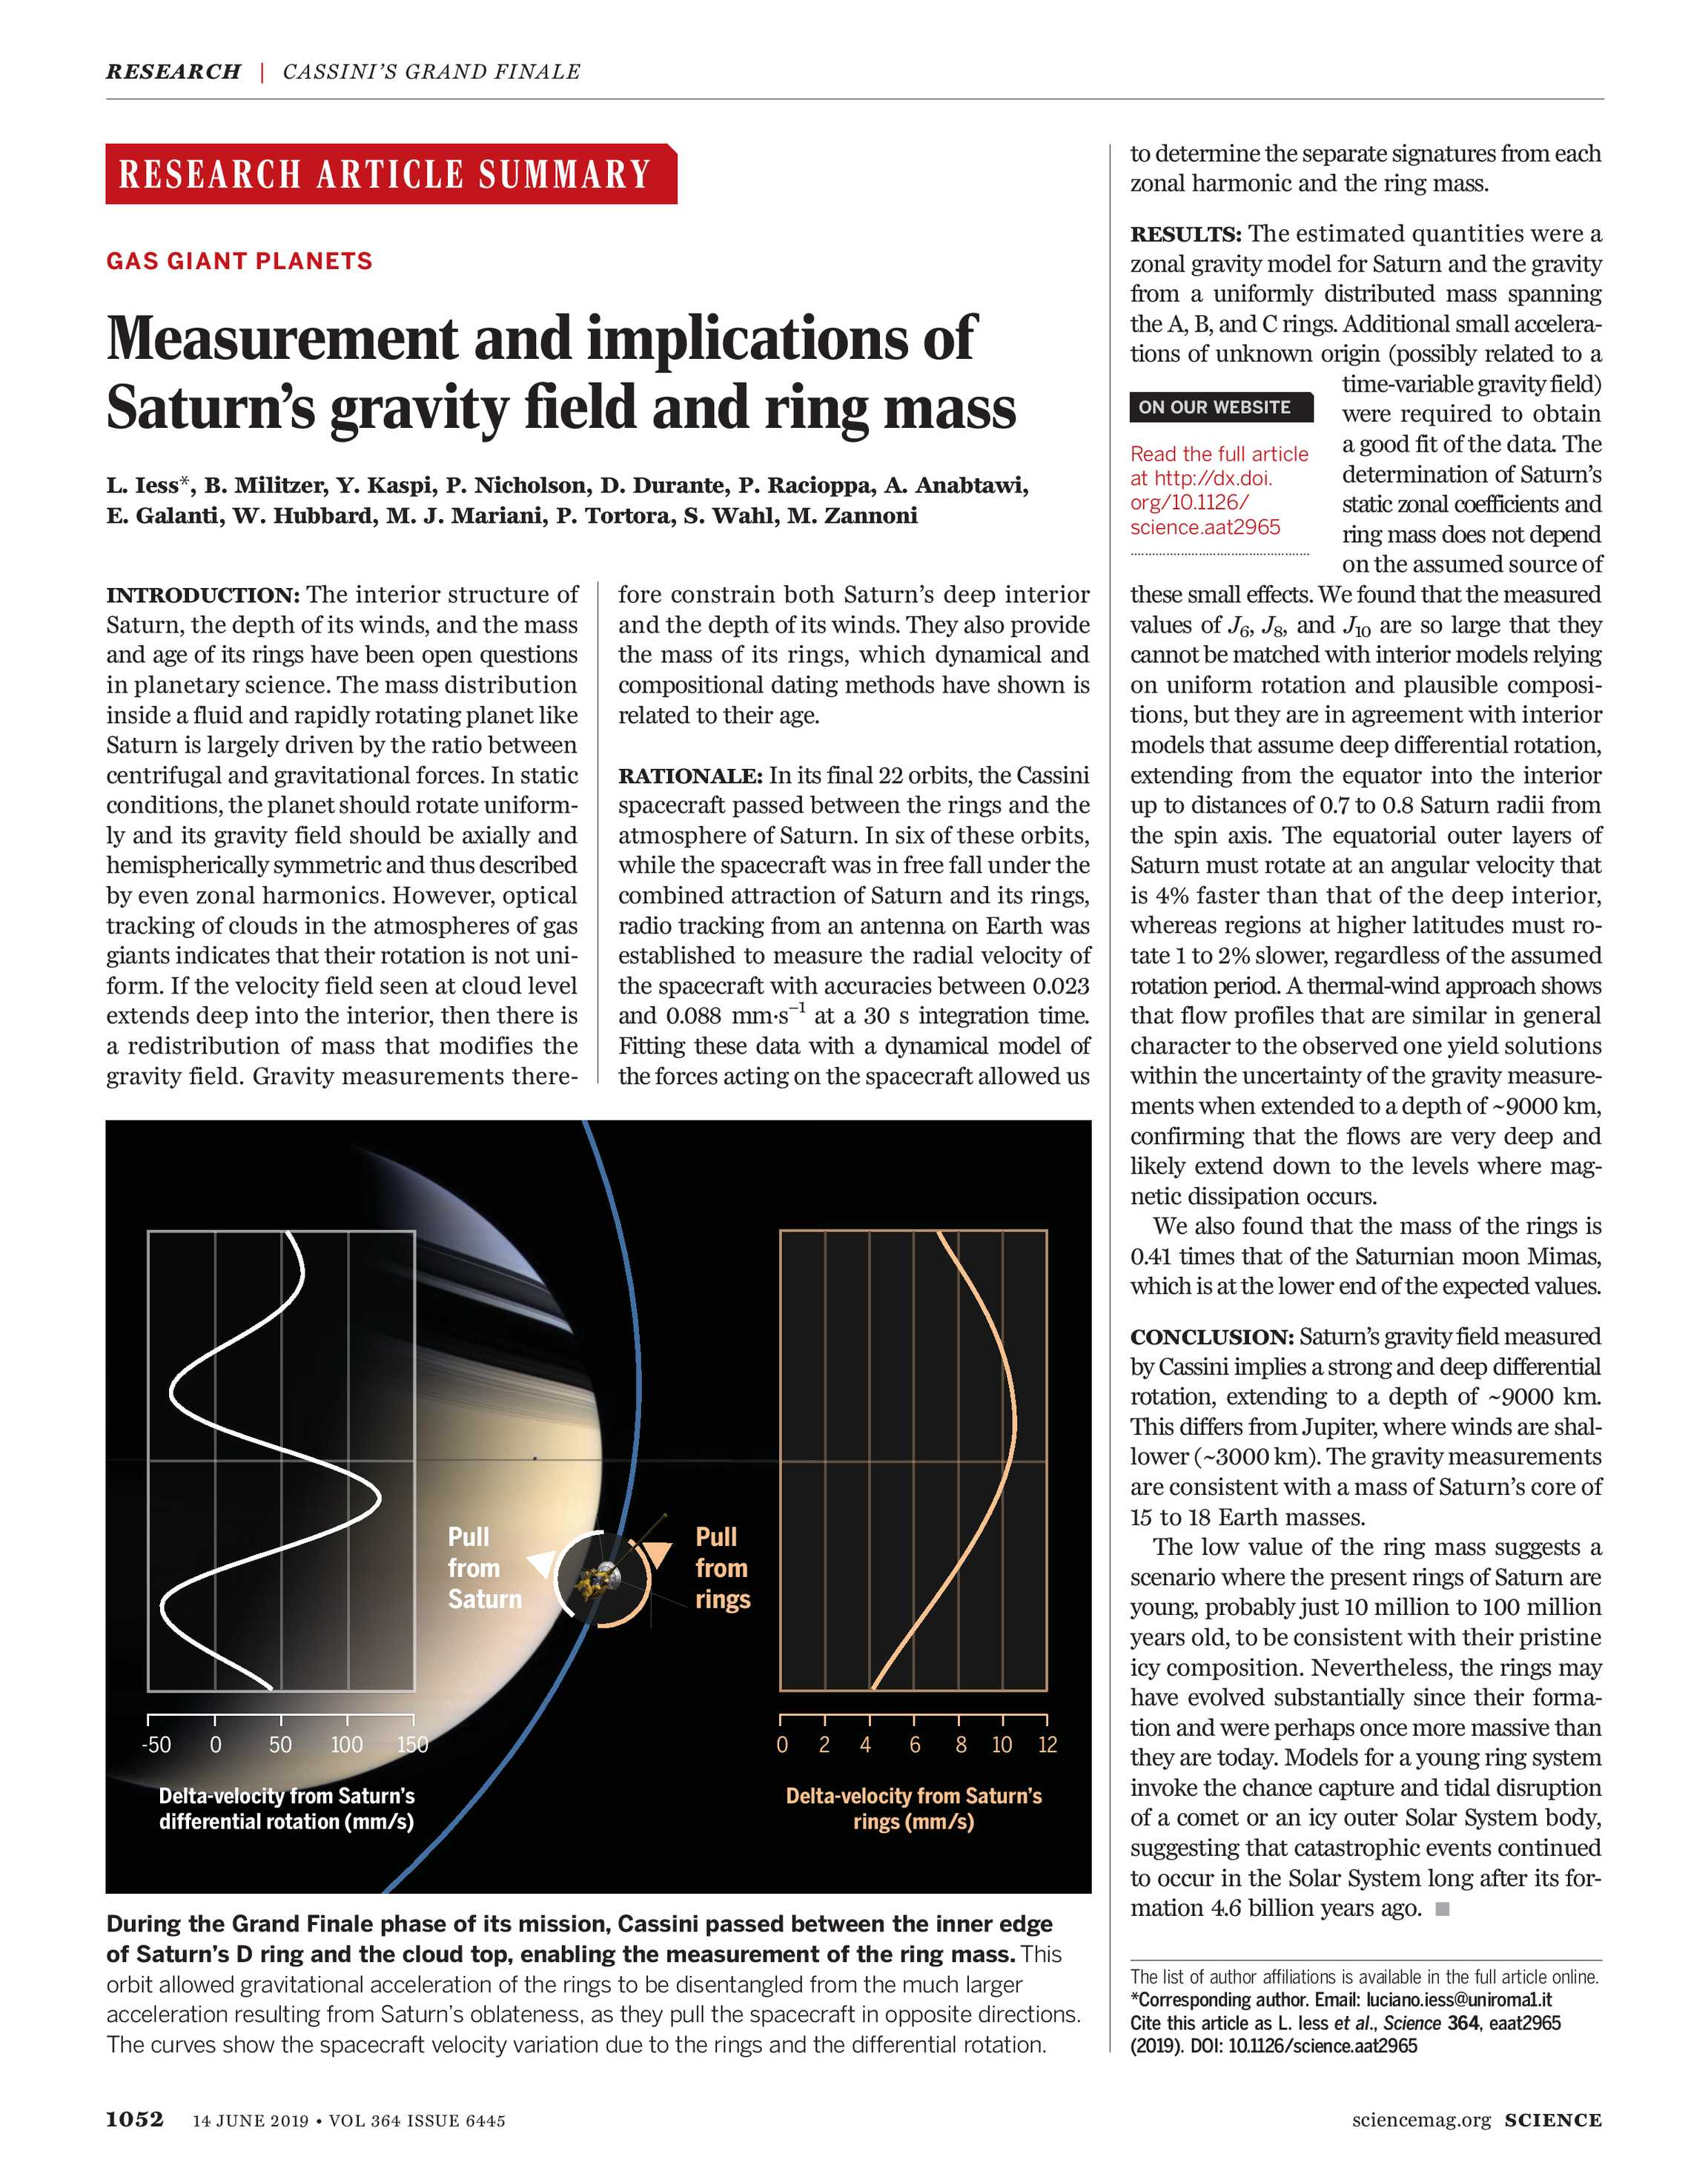 Science Magazine - June 14, 2019 - page 1052